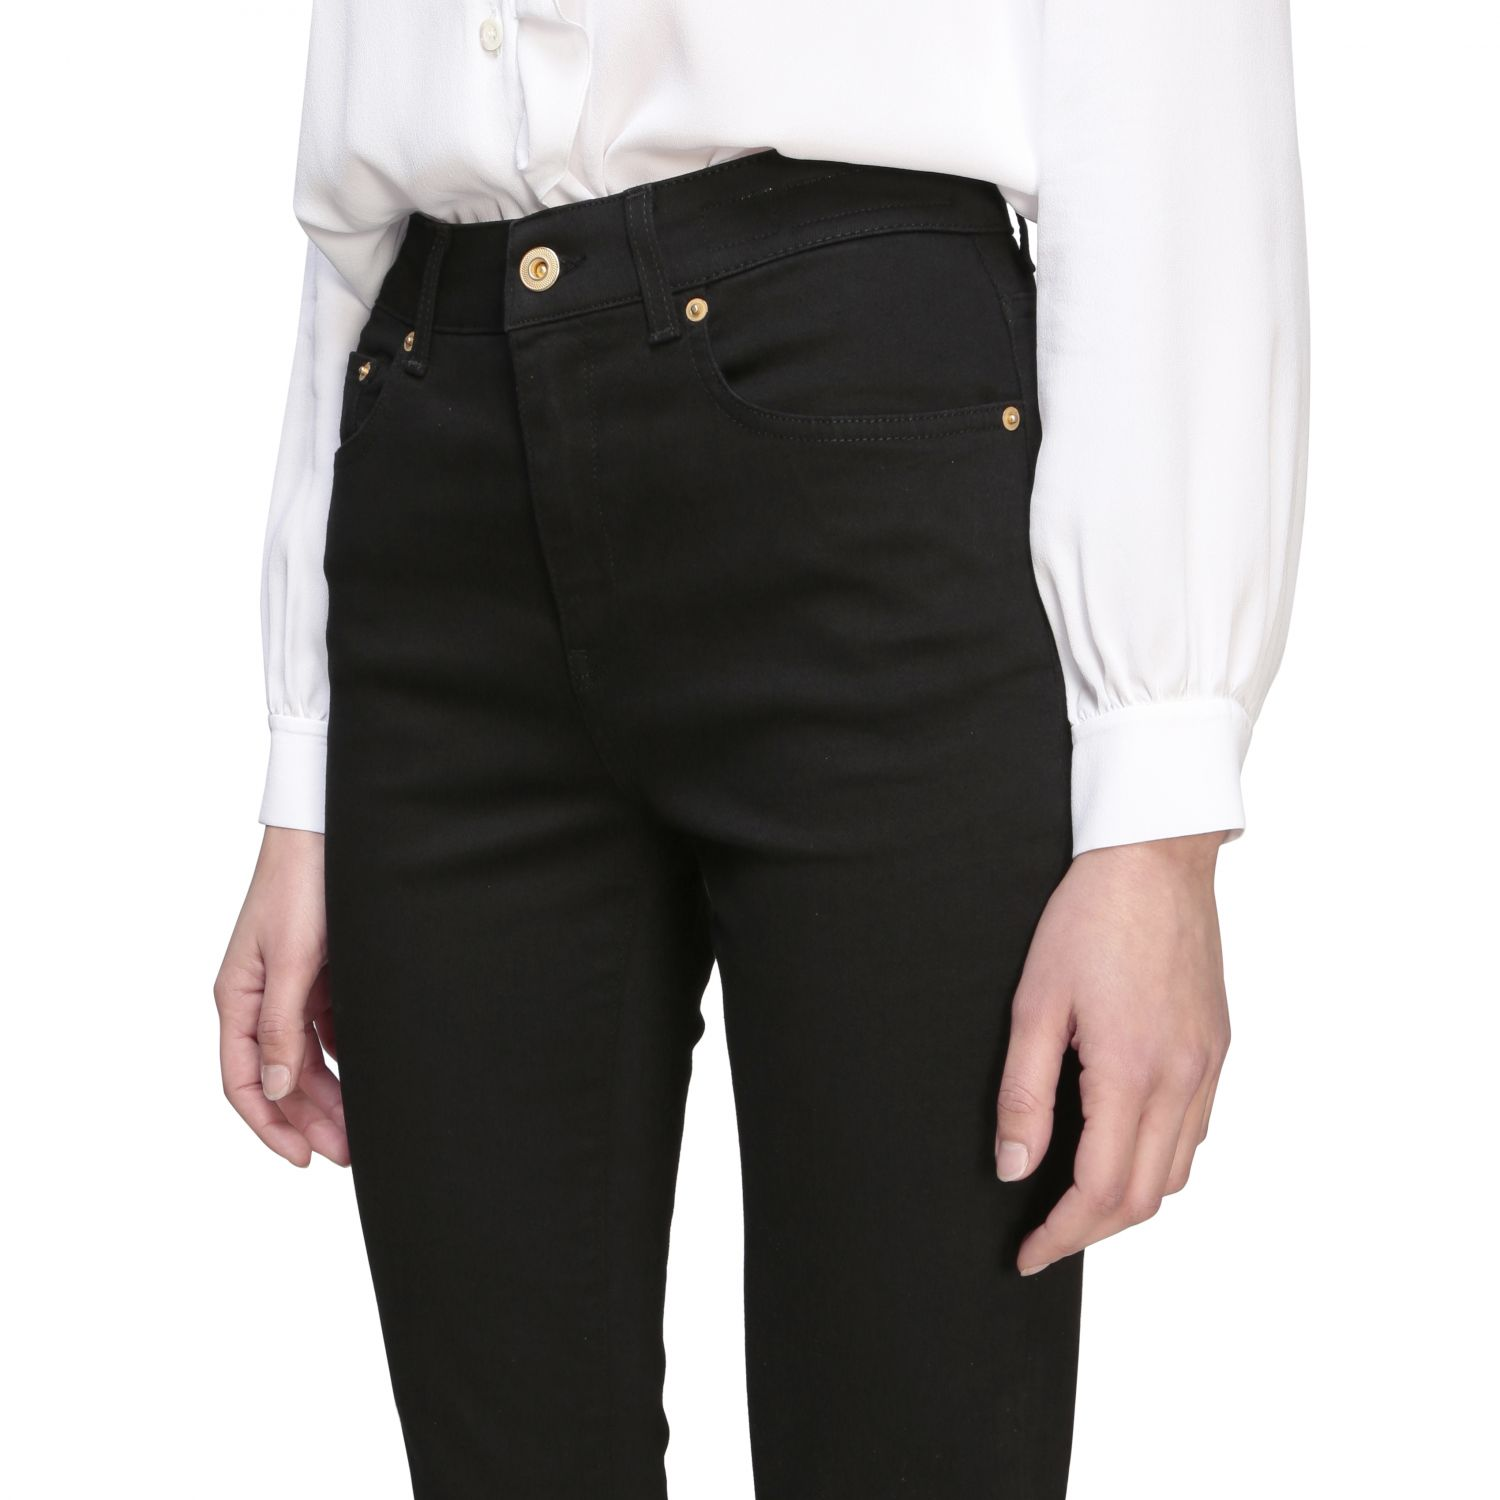 Department 5 Clare slim fit jeans with 5 pockets black 5